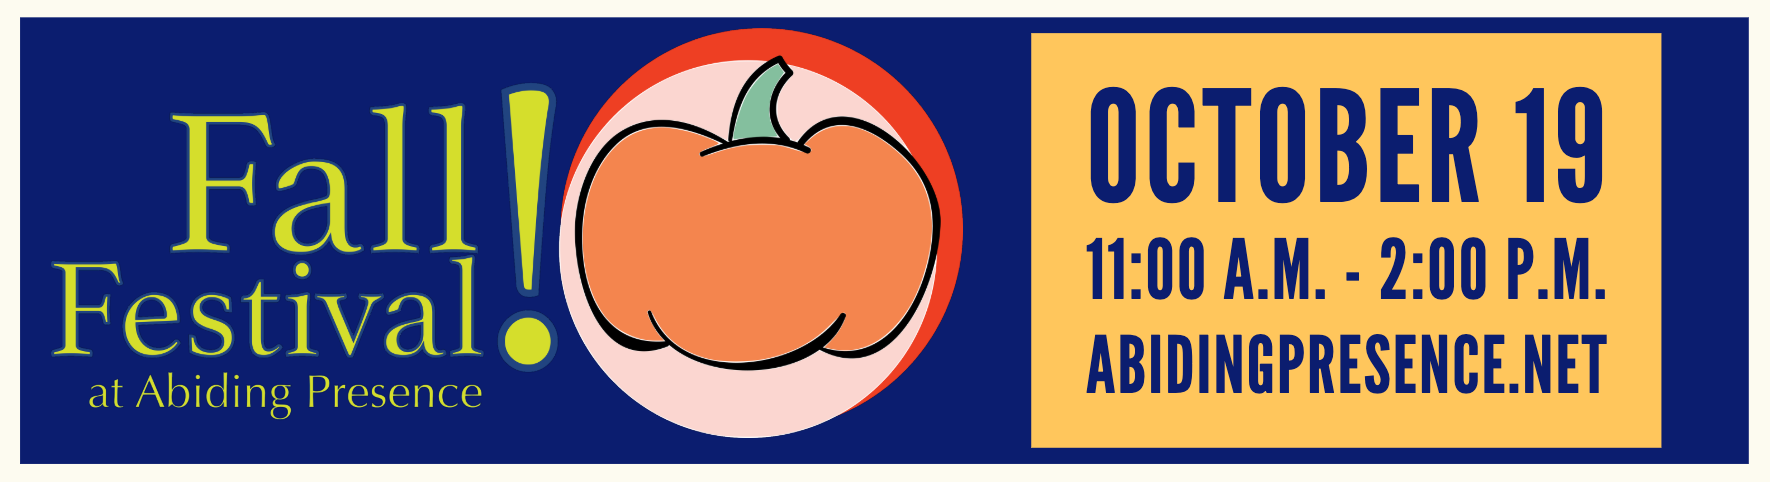 Fall Festival 2019 graphic with date and time only.png